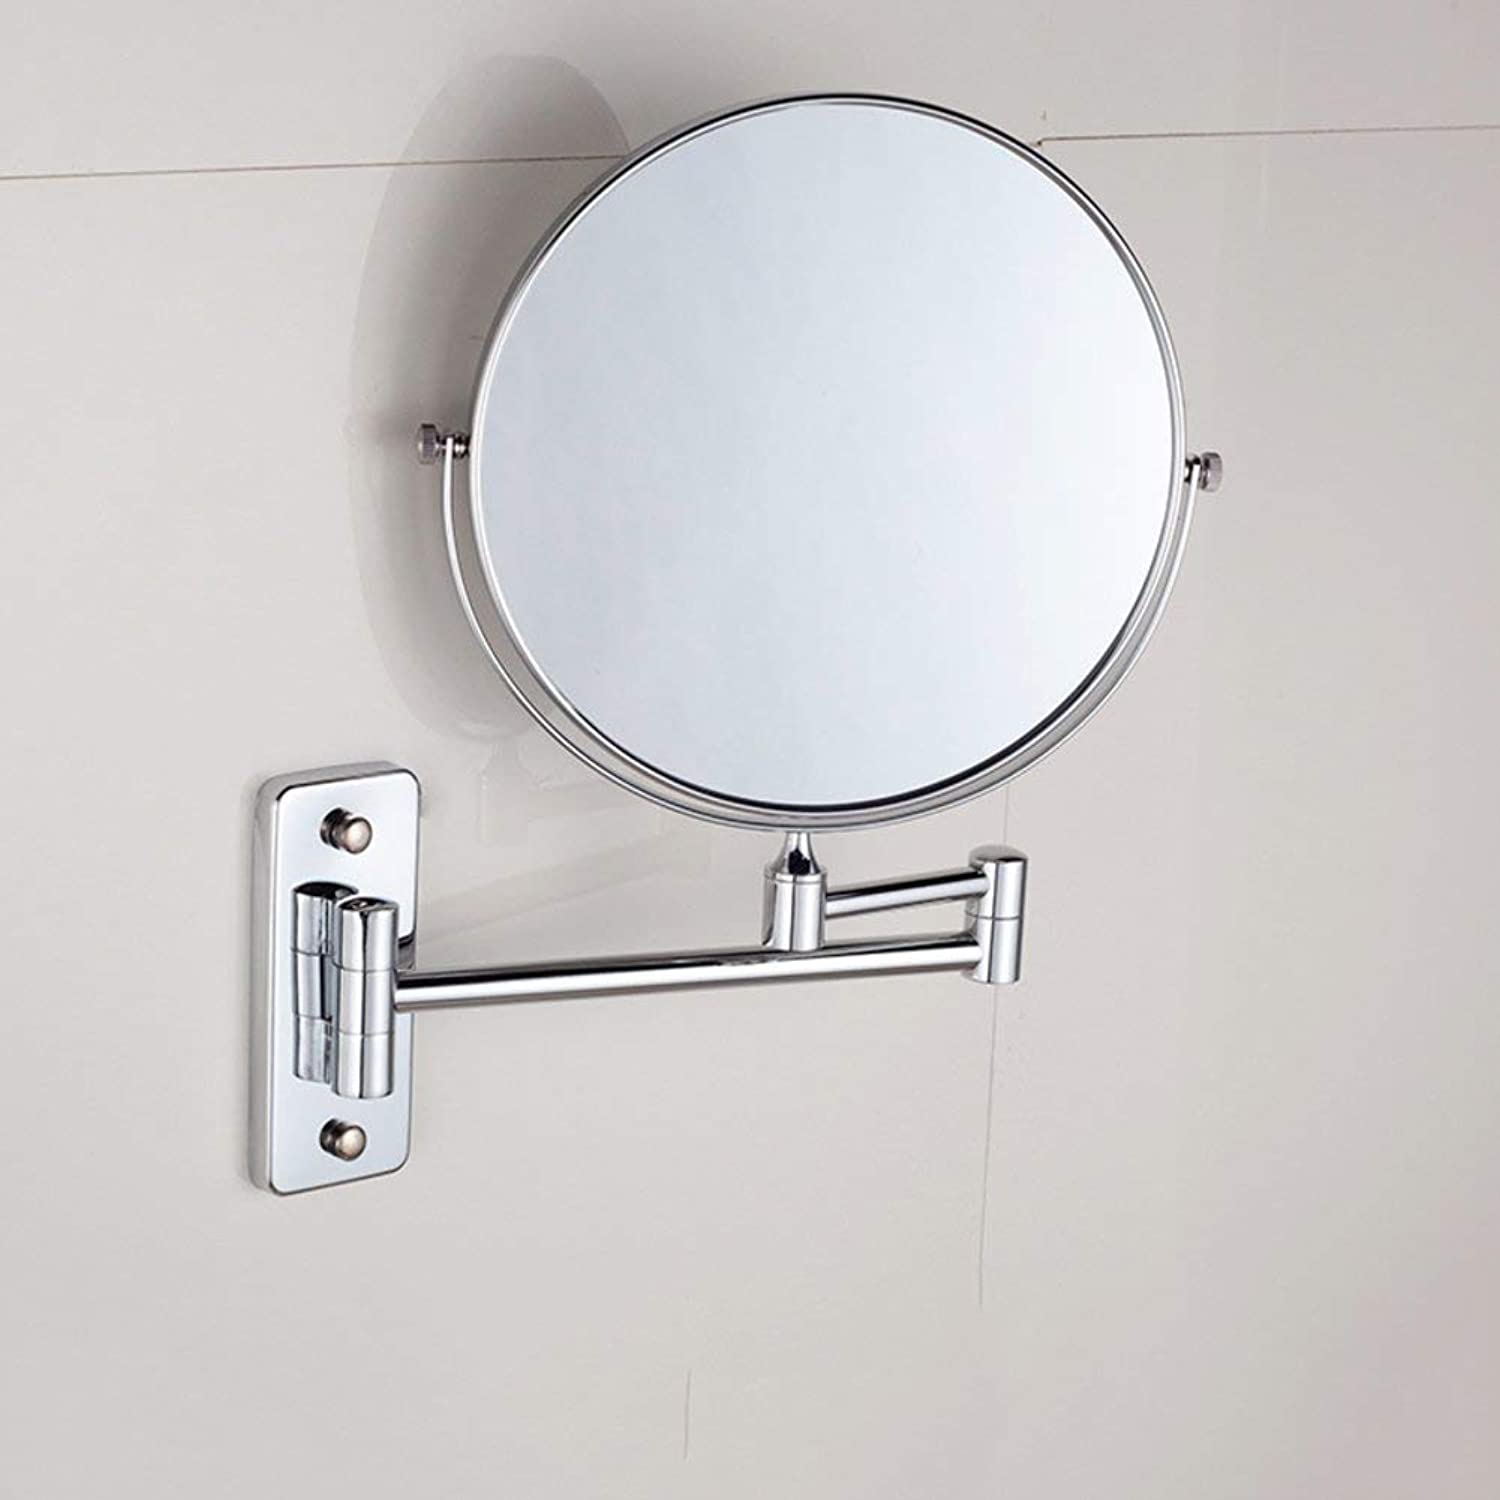 Extendable Makeup Mirror,Bathroom Wall Hanging Make-up Mirror Double - Sided Zoom redation Folding telescopic-A-15cm (color   A-15cm, Size   -)